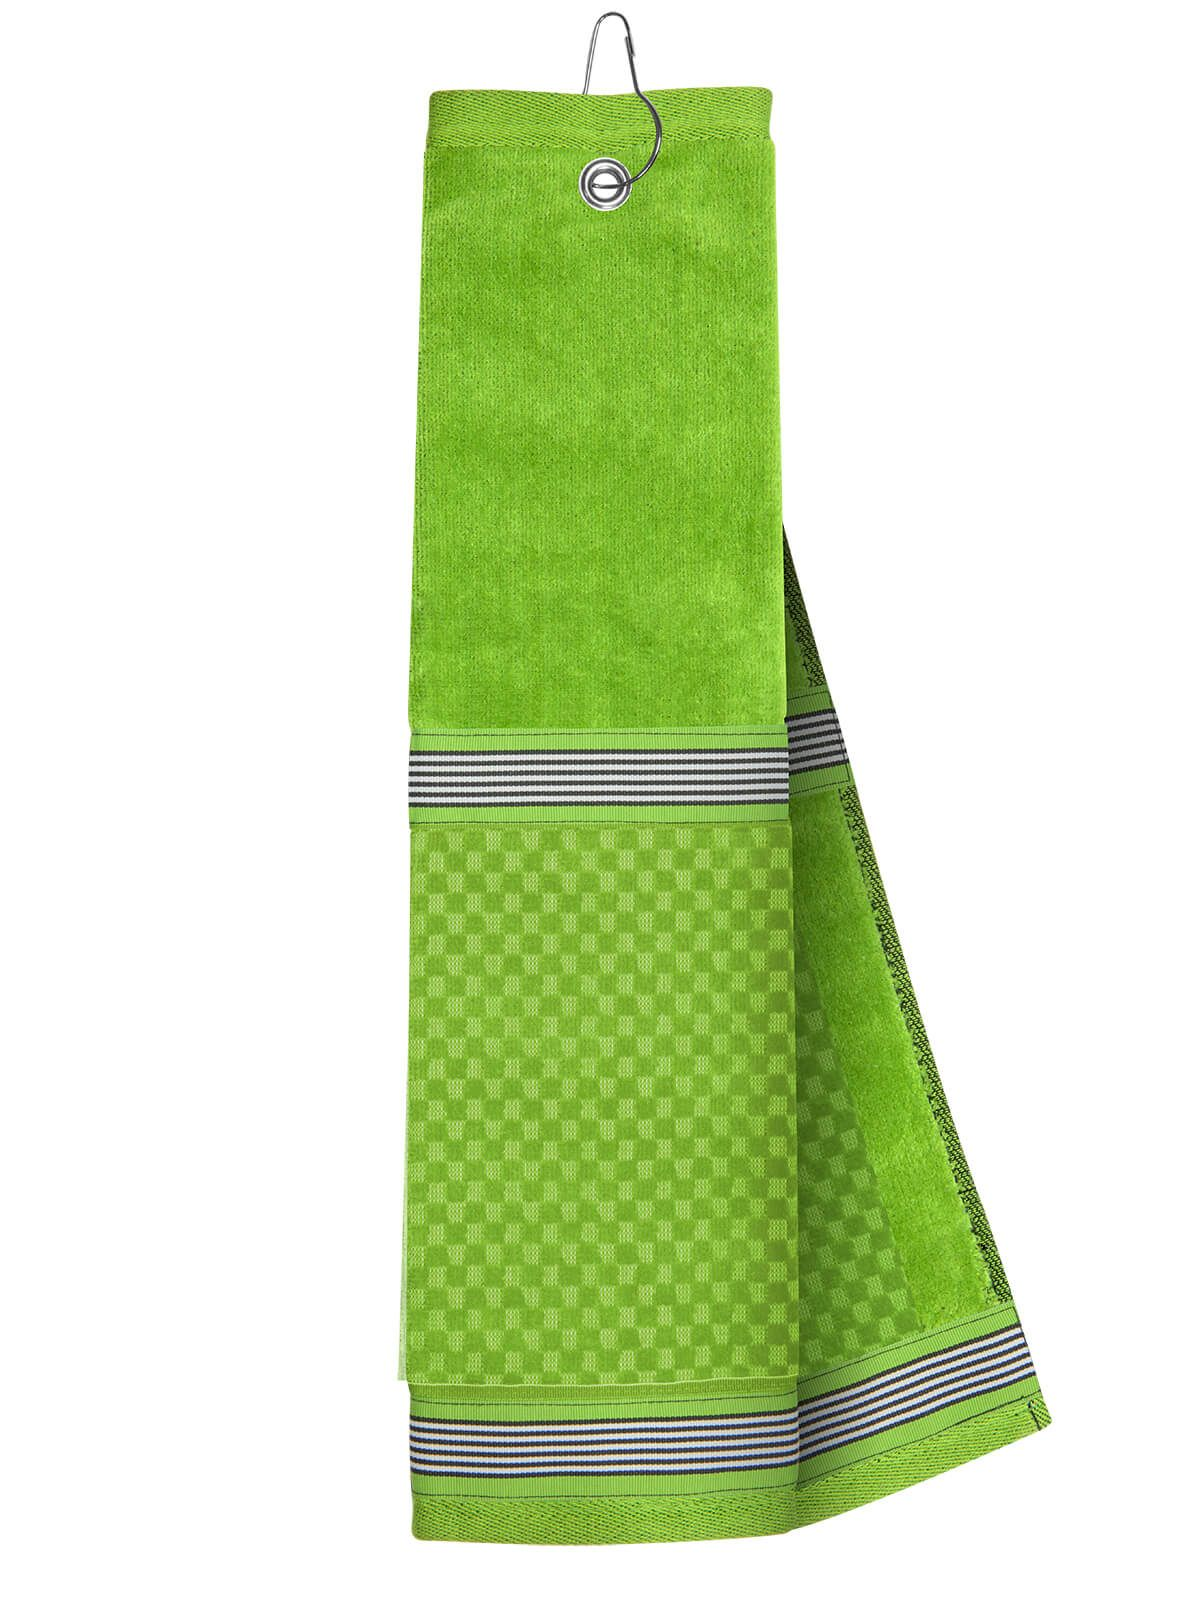 Our Favorite Lime Towel Features Snazzy Stripes To Make Your Bag A Hole In One Hole In One Knit Fashion Luck Of The Irish